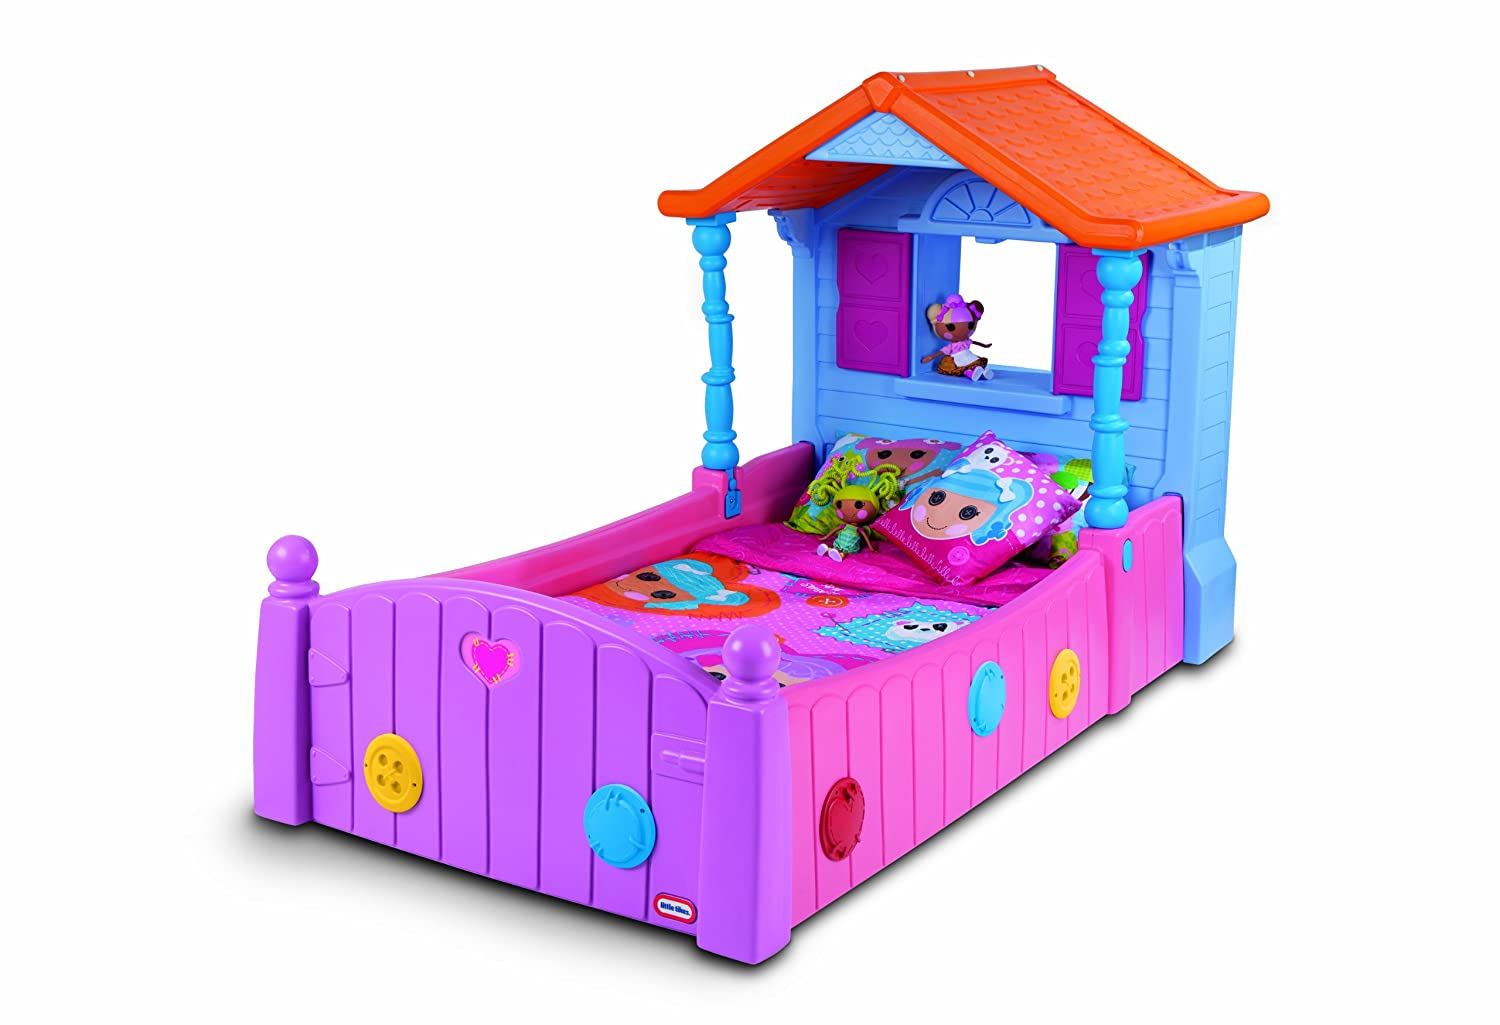 Lalaloopsy Bed Images - Reverse Search